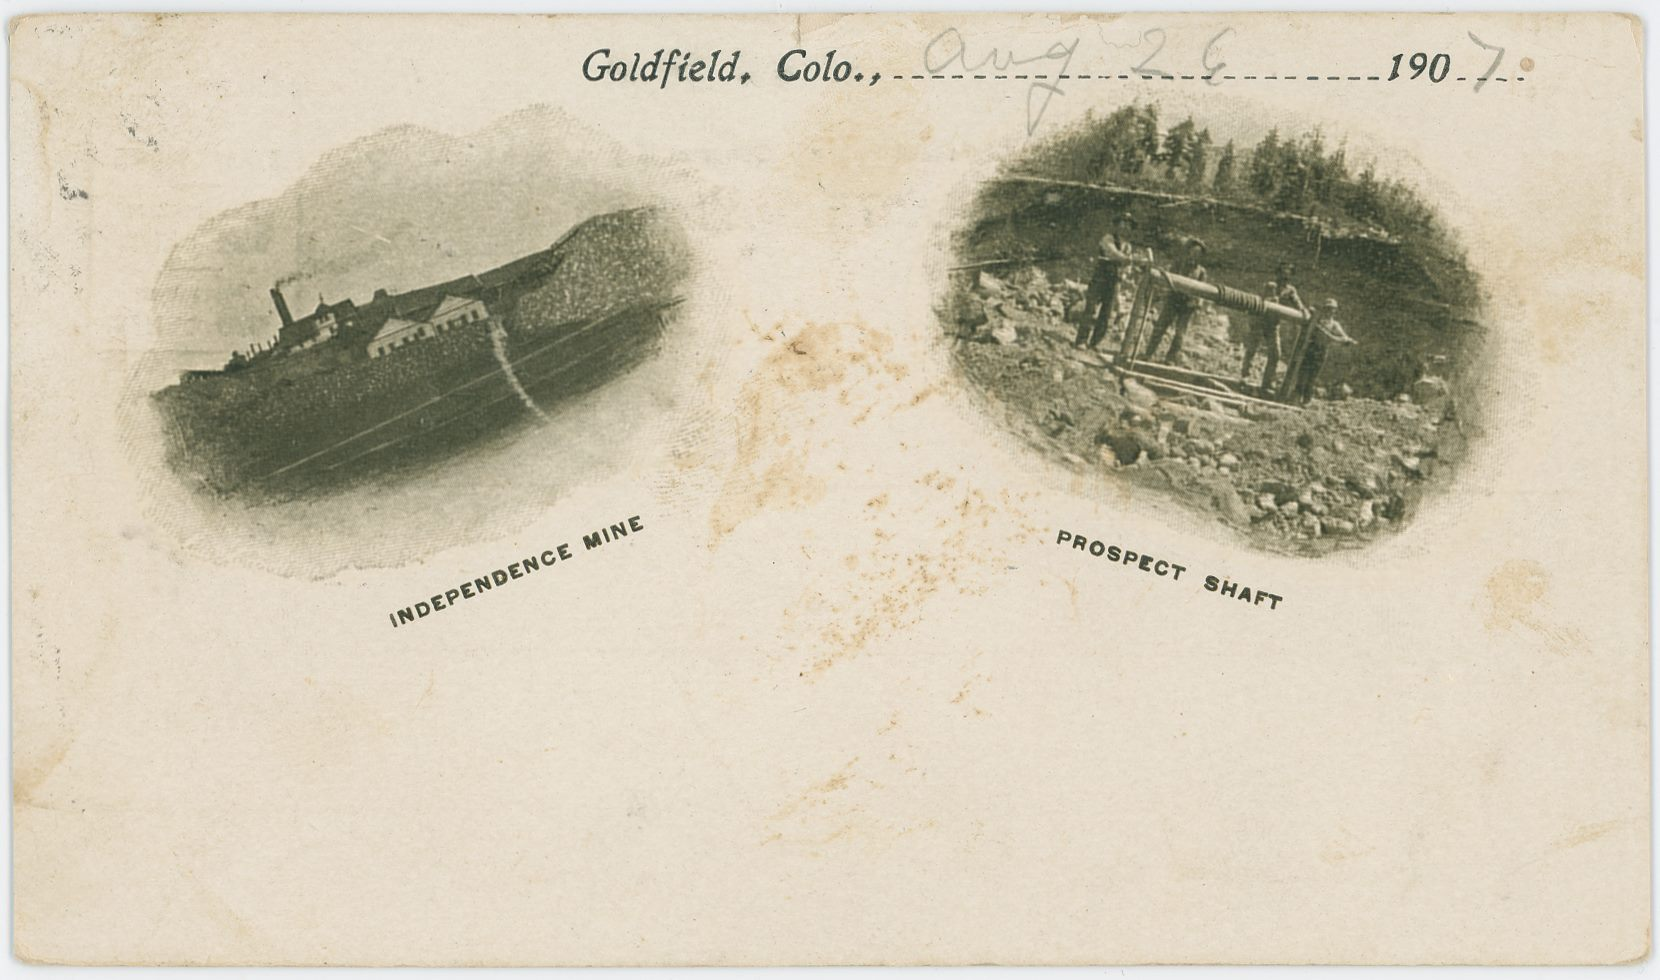 Quality wise is this not a good image card with scenes from the Cripple Creek District, but, it still is one among the many hundred scenes used for postcards with links to the District! The two views; the Independence Mine on the left side and an unknown Prospect Shaft on the right-hand side is really showing the span of the reason for the whole District. It could go from right to left – from hoping to hit the jackpot, to actually find it – or it could go the other way, from rich to poor.    Neither views are that good due to the nature of this printed card, but still I wanted to share it, and possible, one day I learn more about the view on the right-hand side… Till that might happen, I only share as a link the left view, the Independence Mine, as a cropped 600 dpi view on my weblink below.